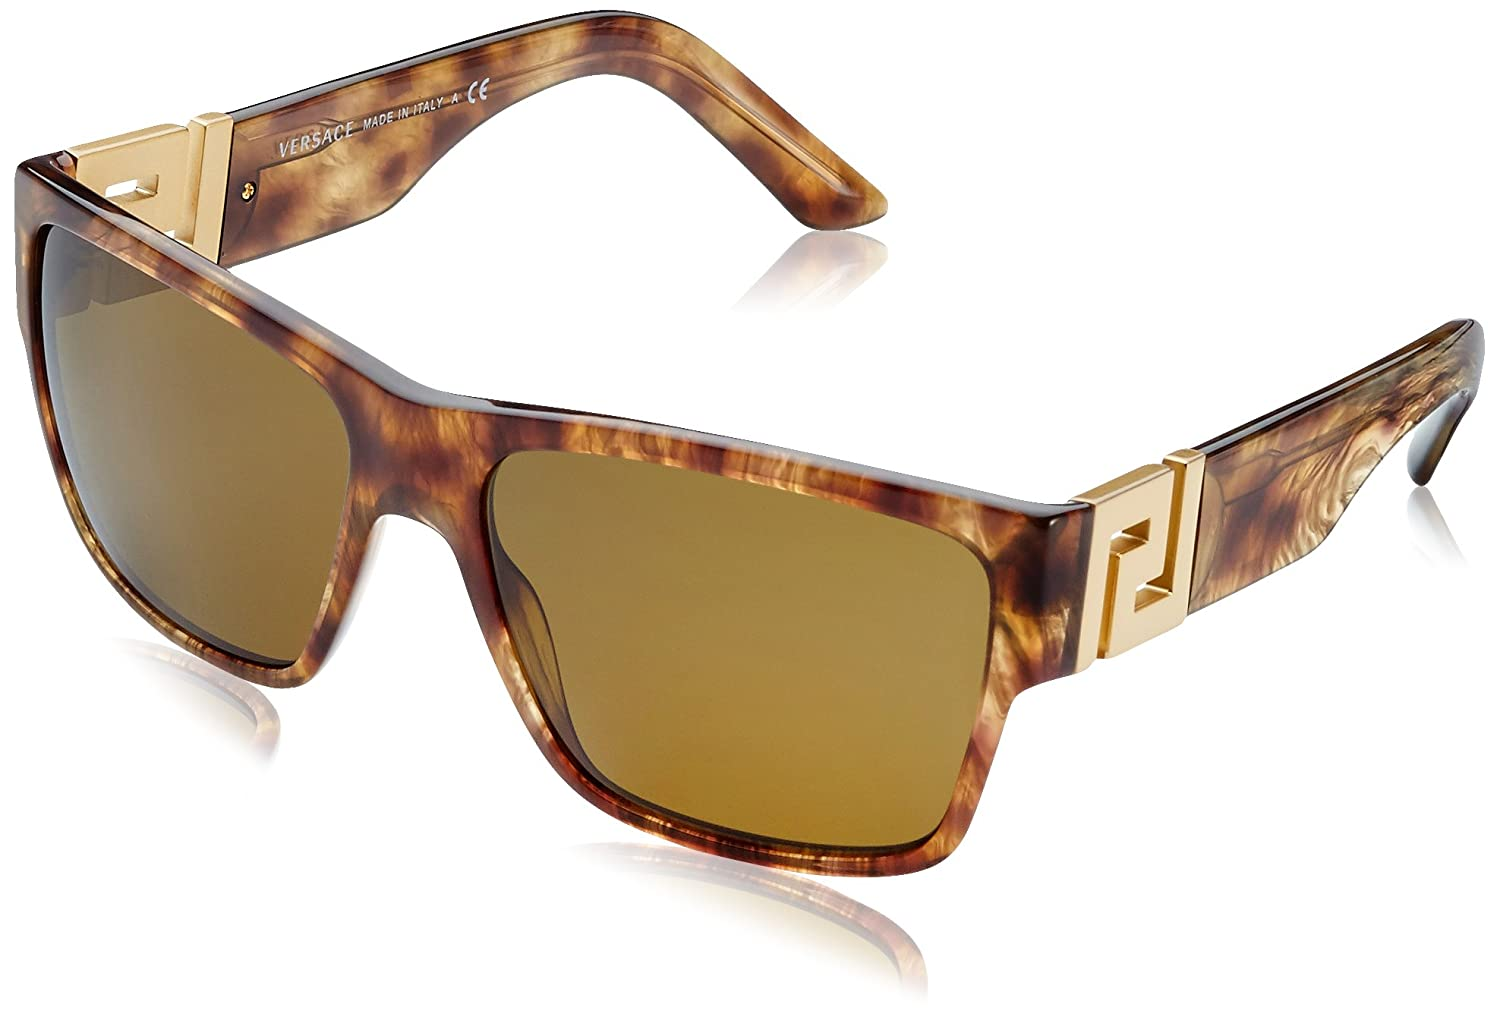 3ec9c0ee417 Amazon.com  Versace Women s VE4296 Striped Havana Brown  Clothing